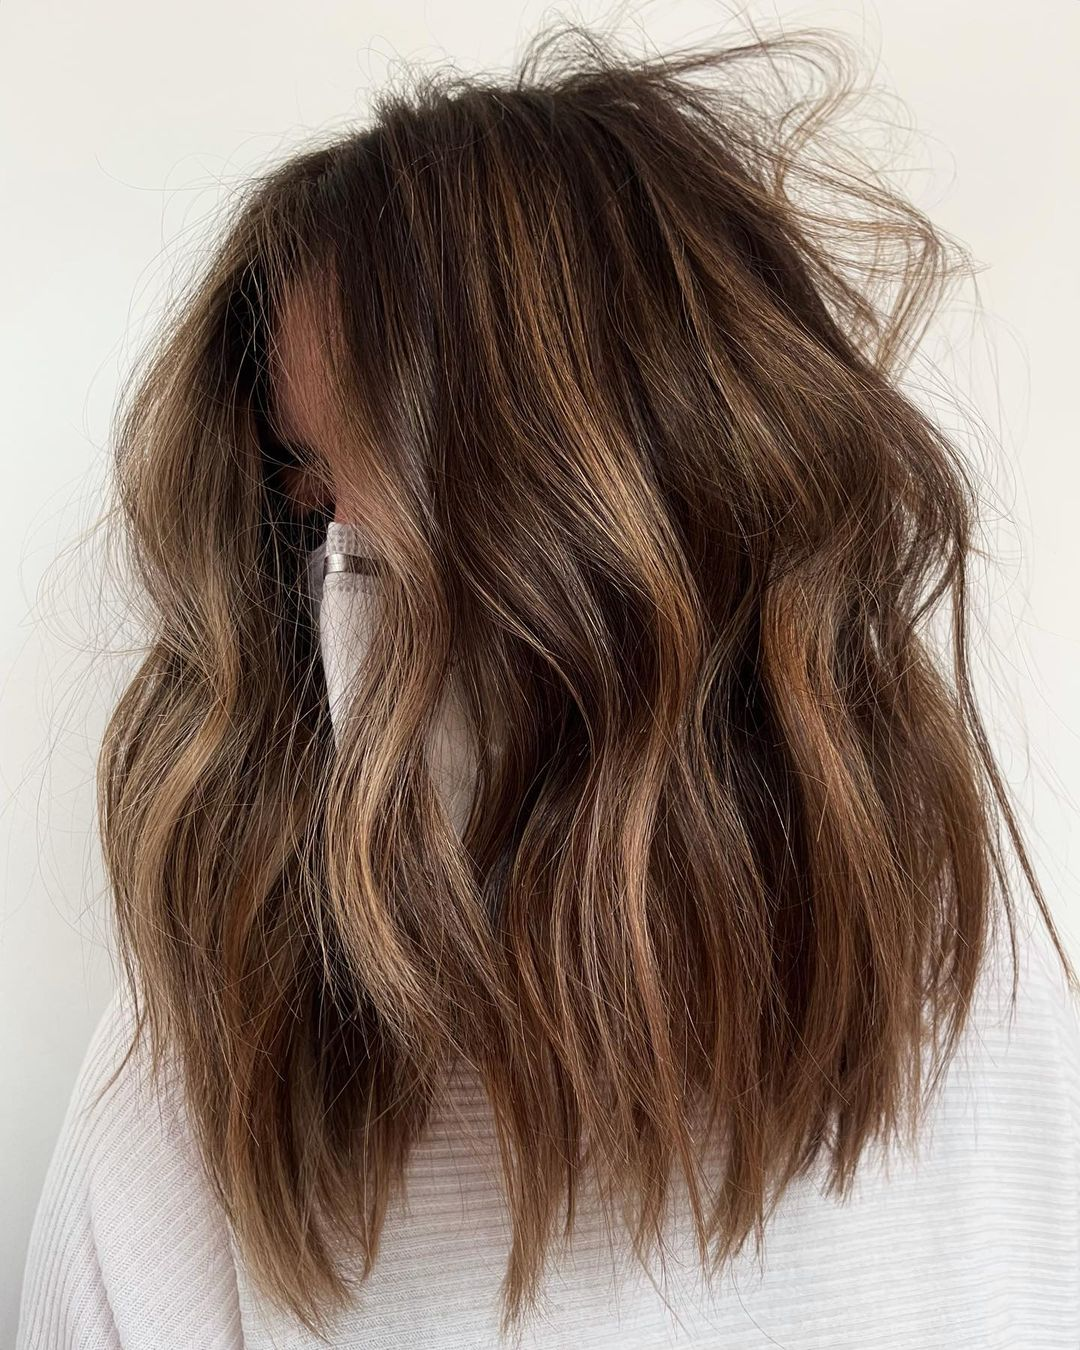 Messy Brown Hair with Partial Balayage